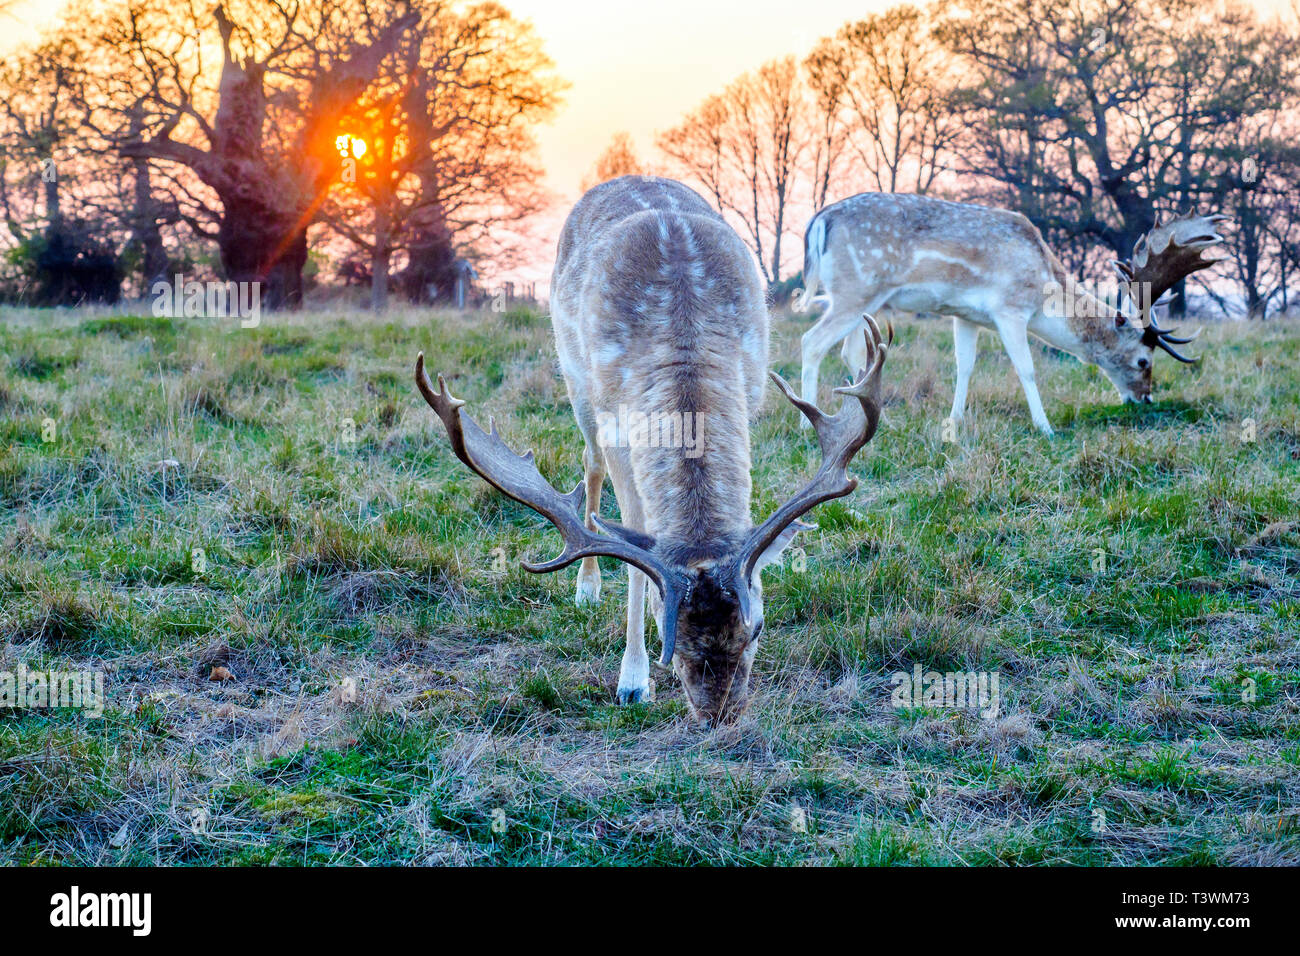 Deer in Richmond Park - Greater London, England - Stock Image